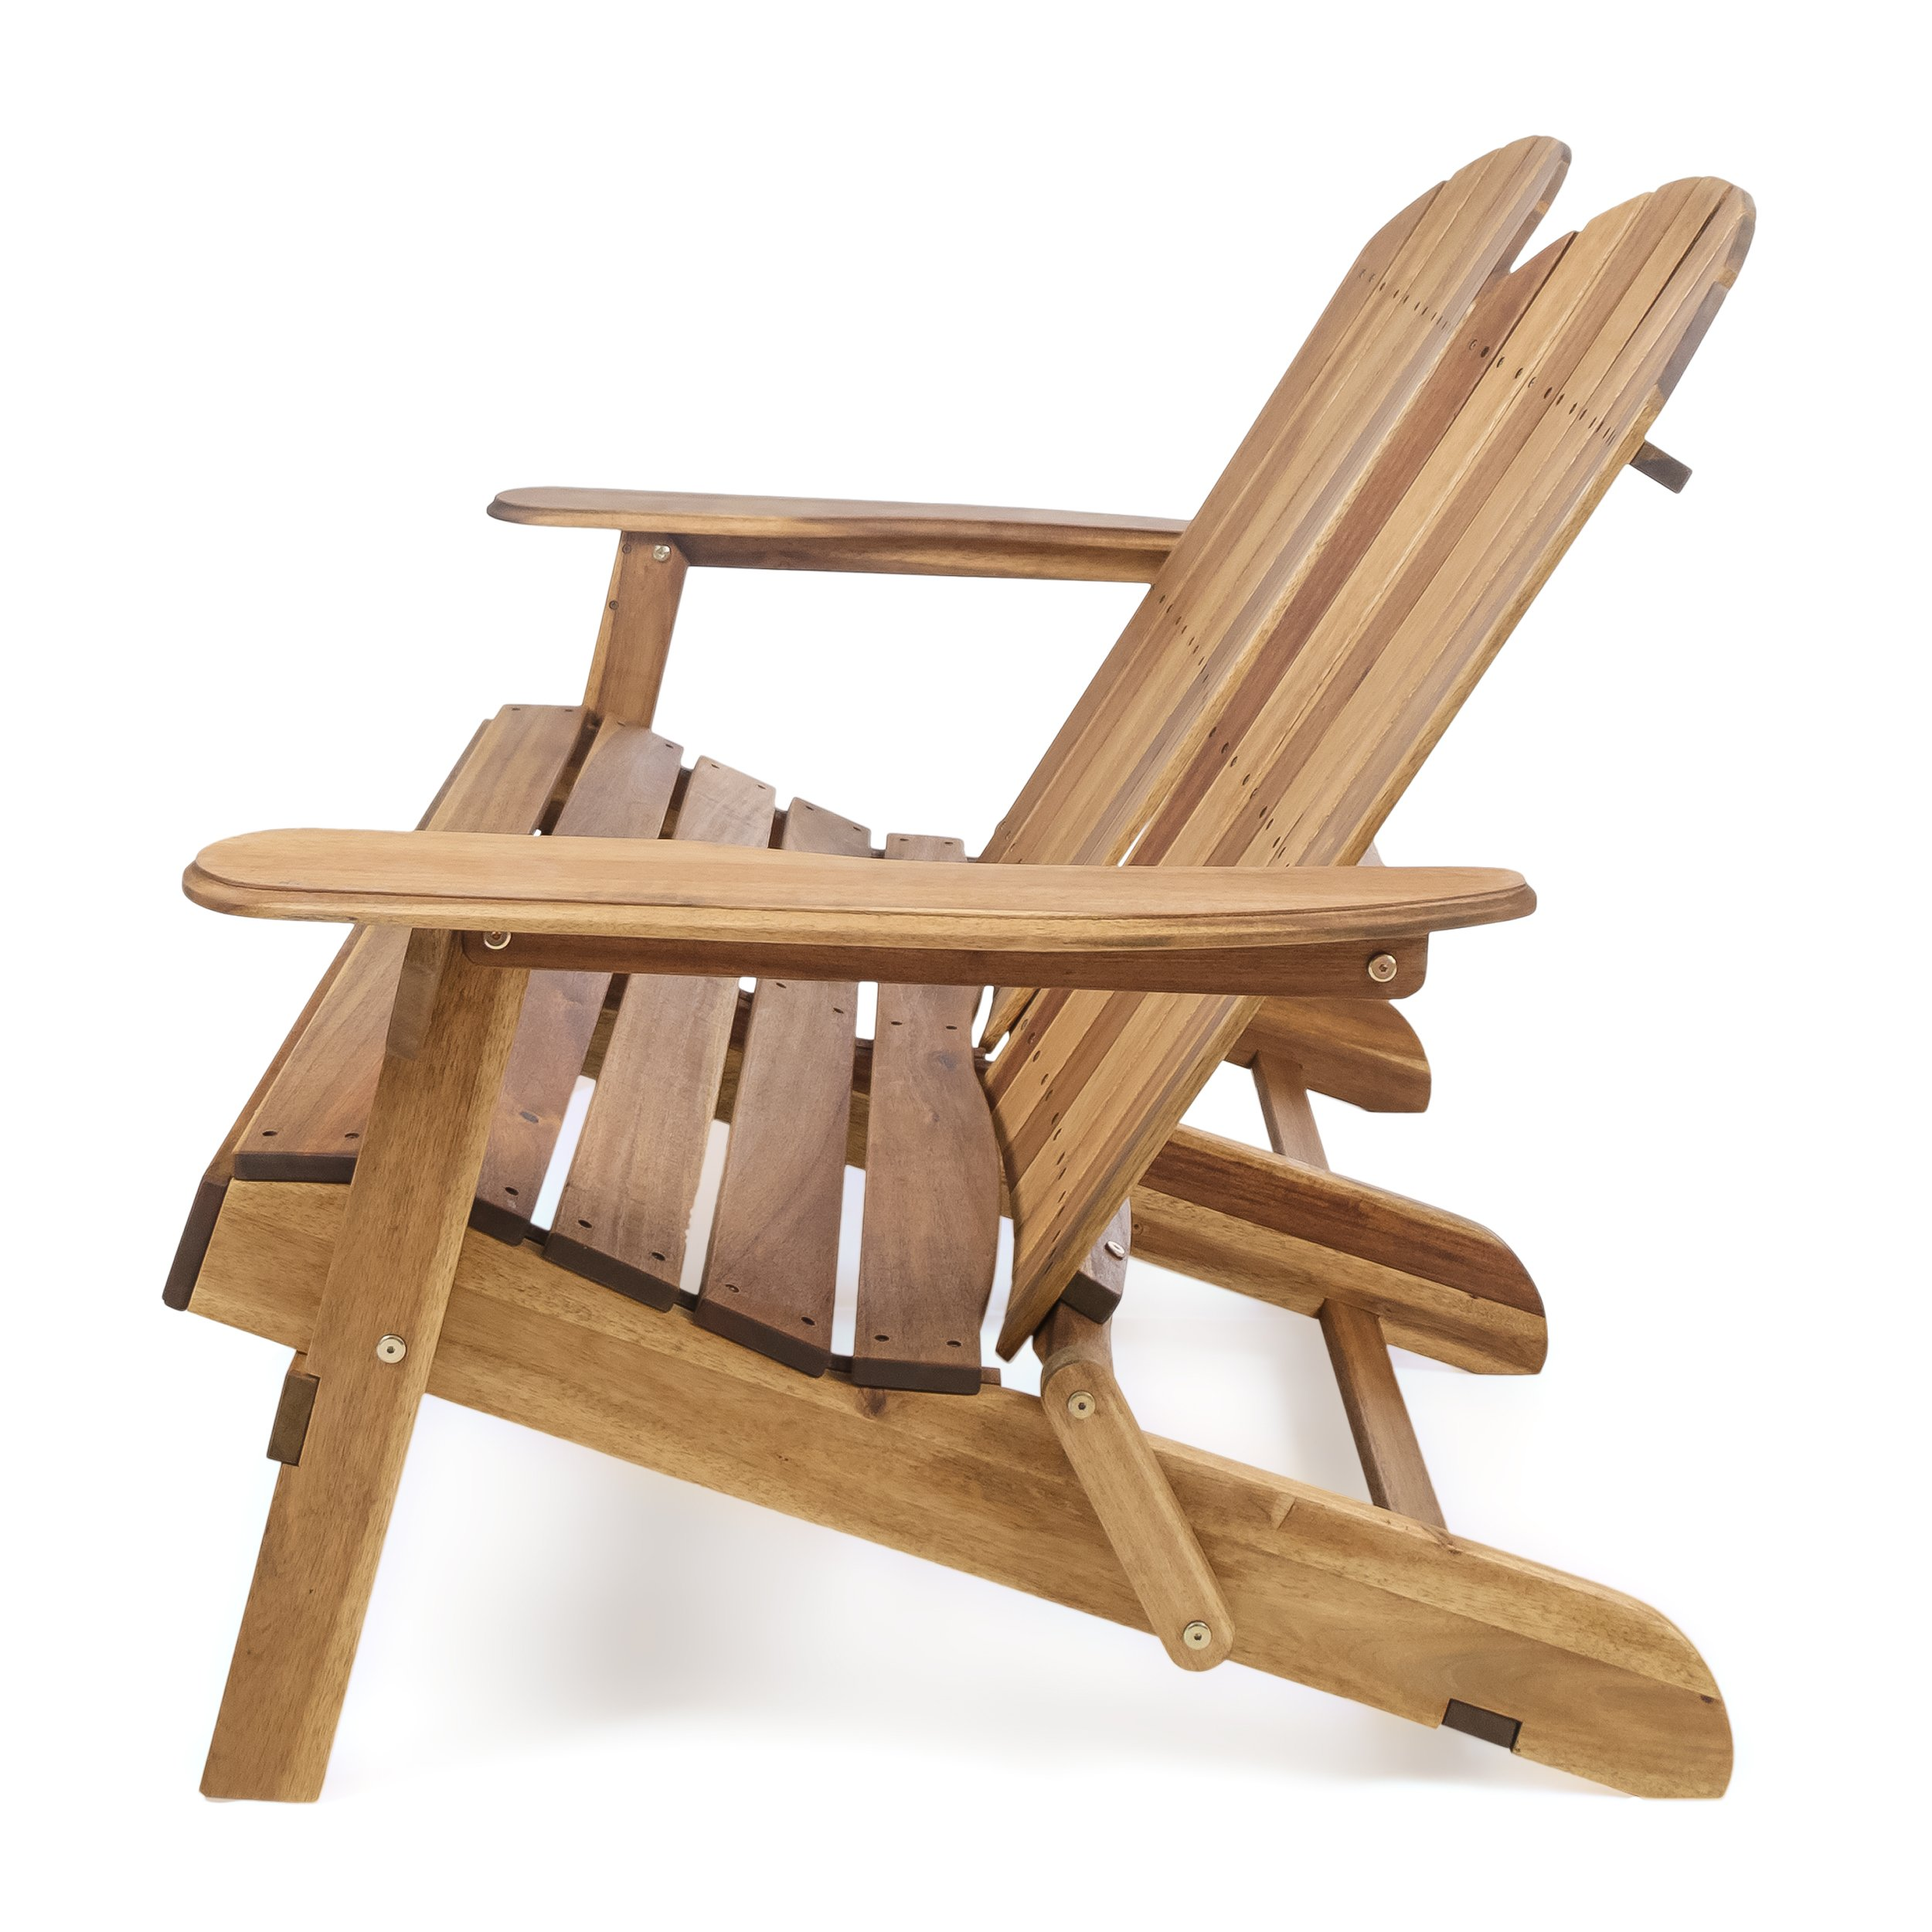 Great Deal Furniture Muriel Outdoor Natural Finish Acacia Wood Adirondack Loveseat by Great Deal Furniture (Image #3)